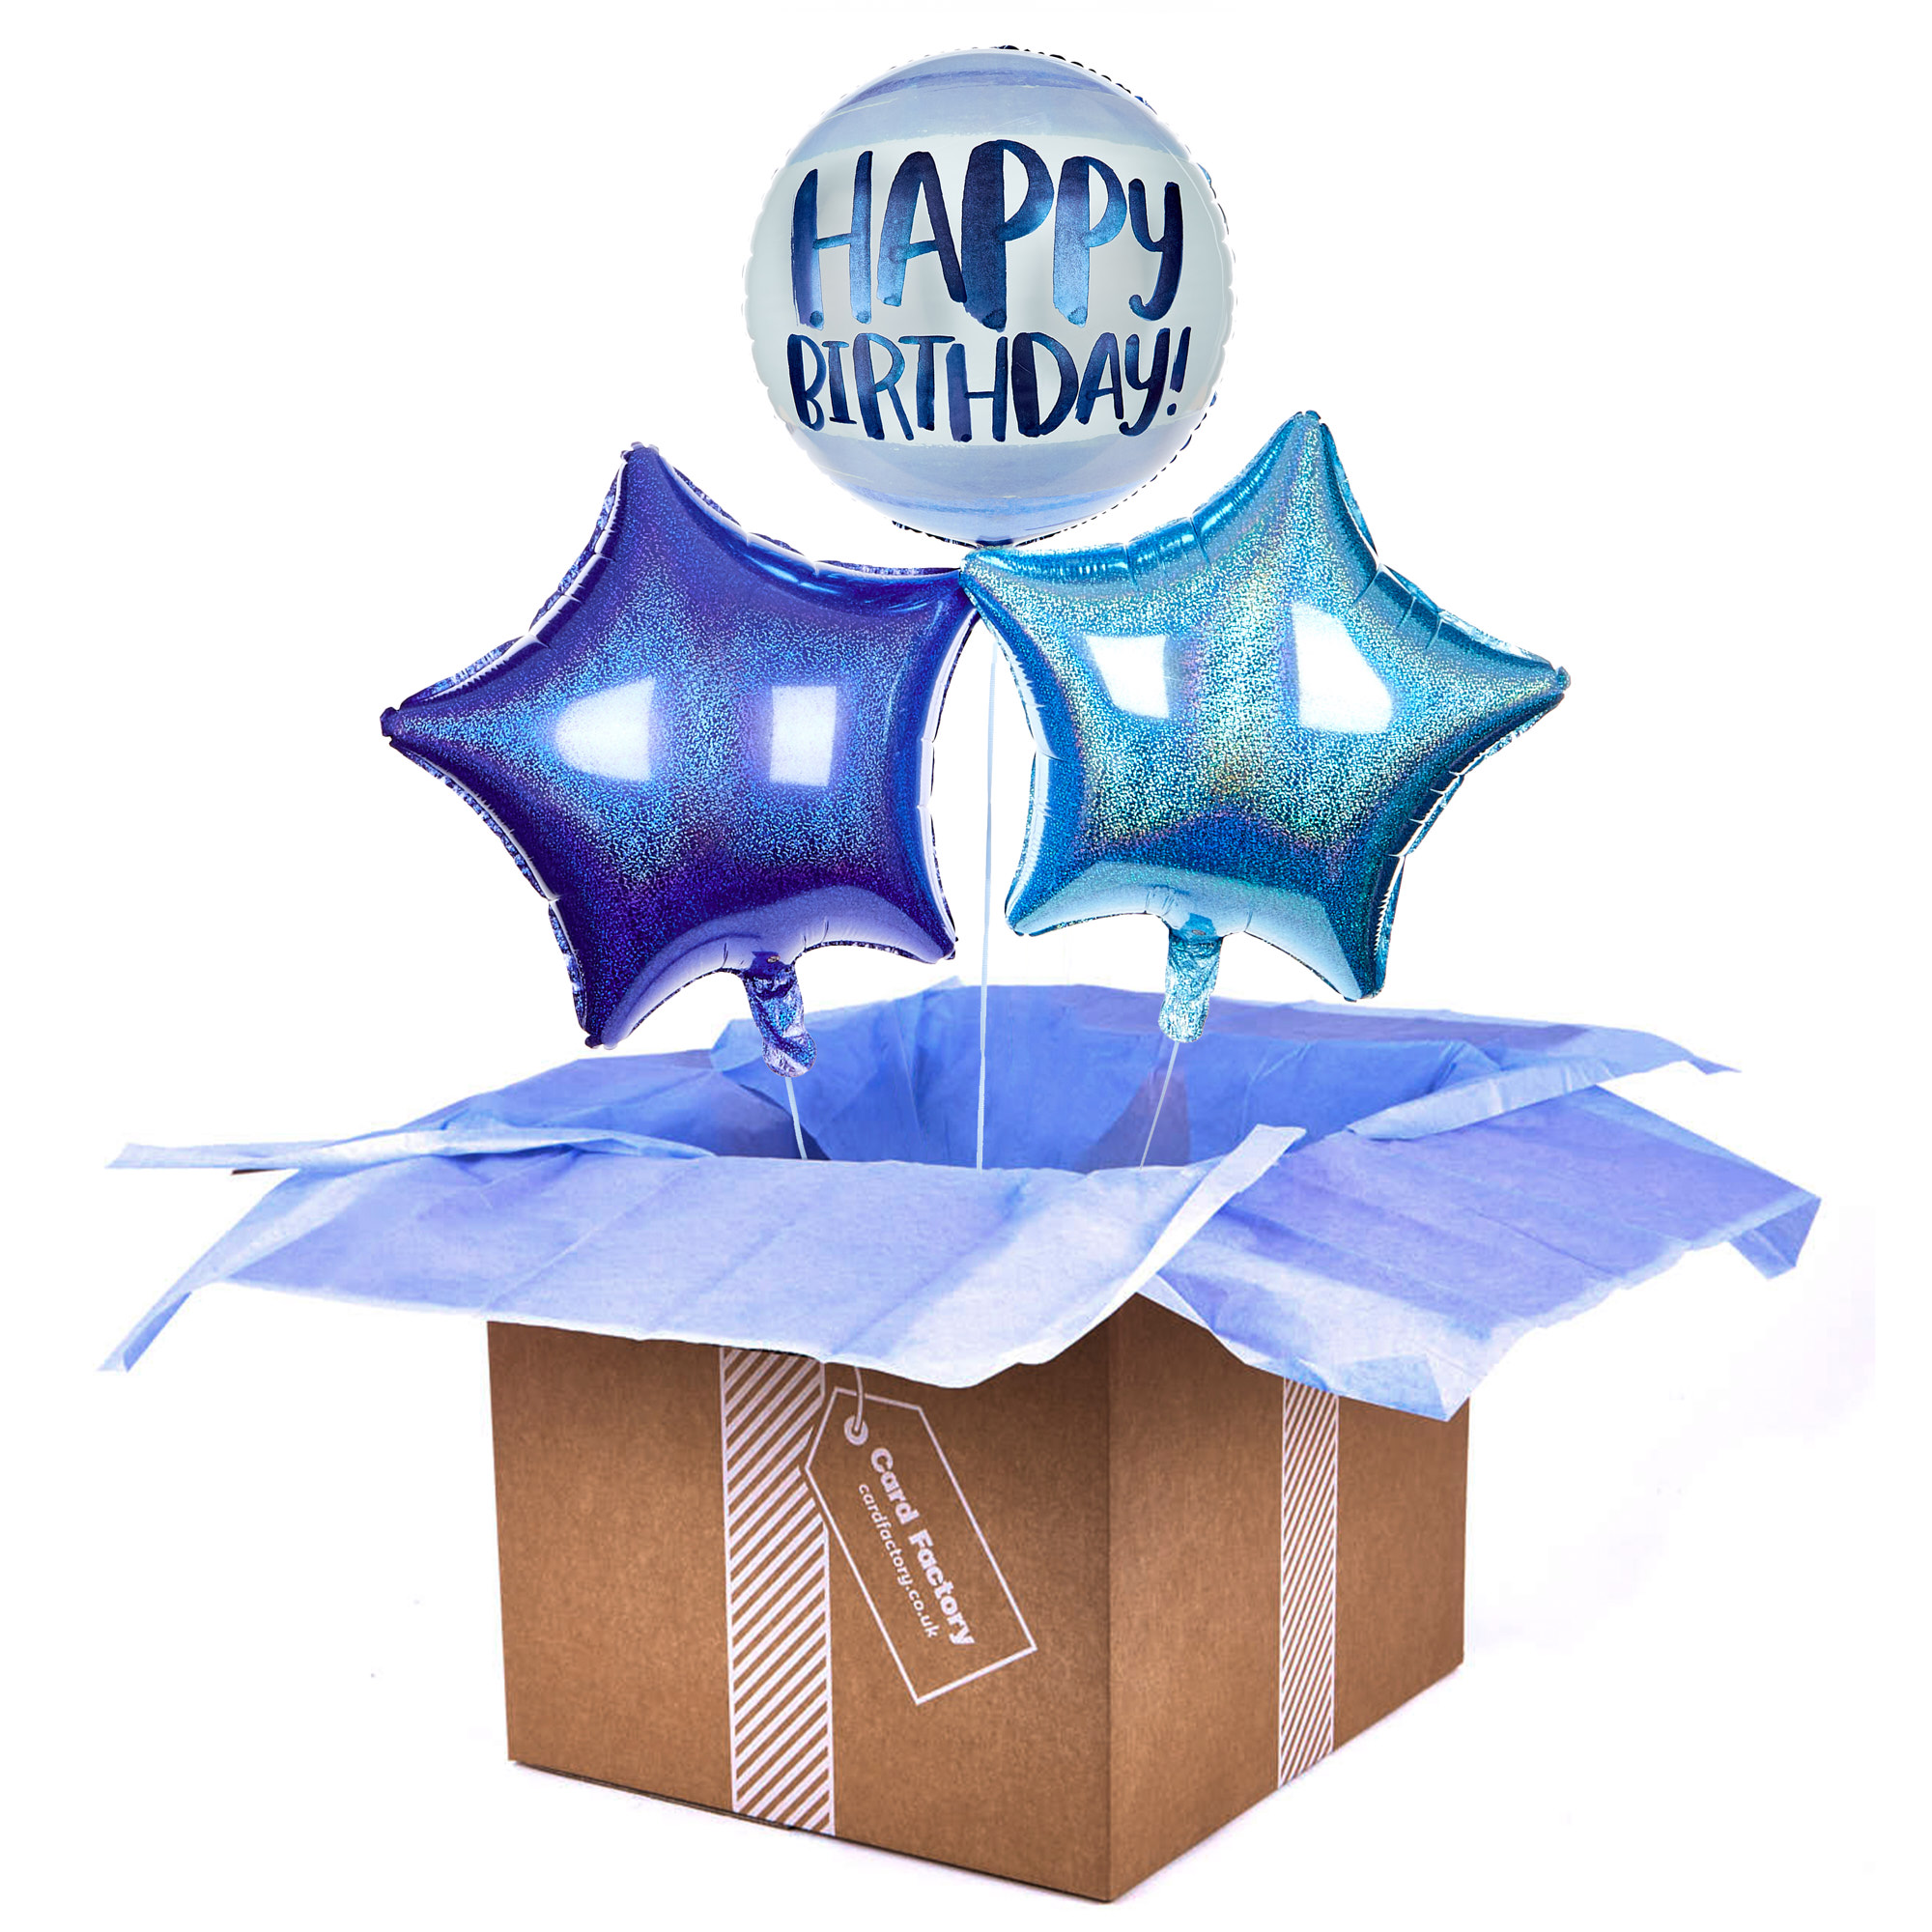 Blue Watercolour Happy Birthday Balloon Bouquet - The Perfect Gift!